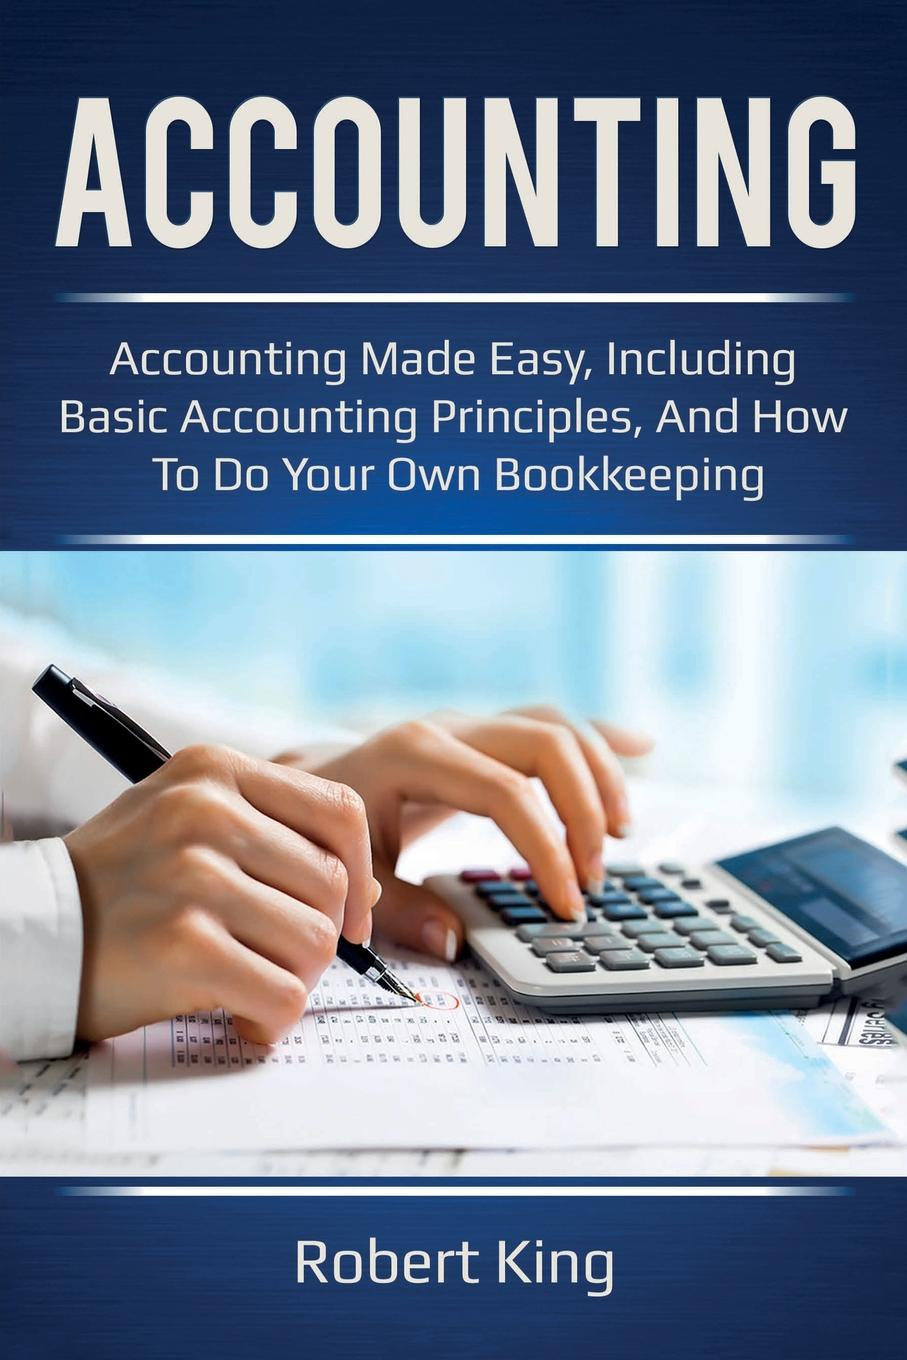 Accounting. Accounting made easy, including basic accounting principles, and how to do your own bookkeeping! Do you want to learn how to do your own accounting, but aren't...